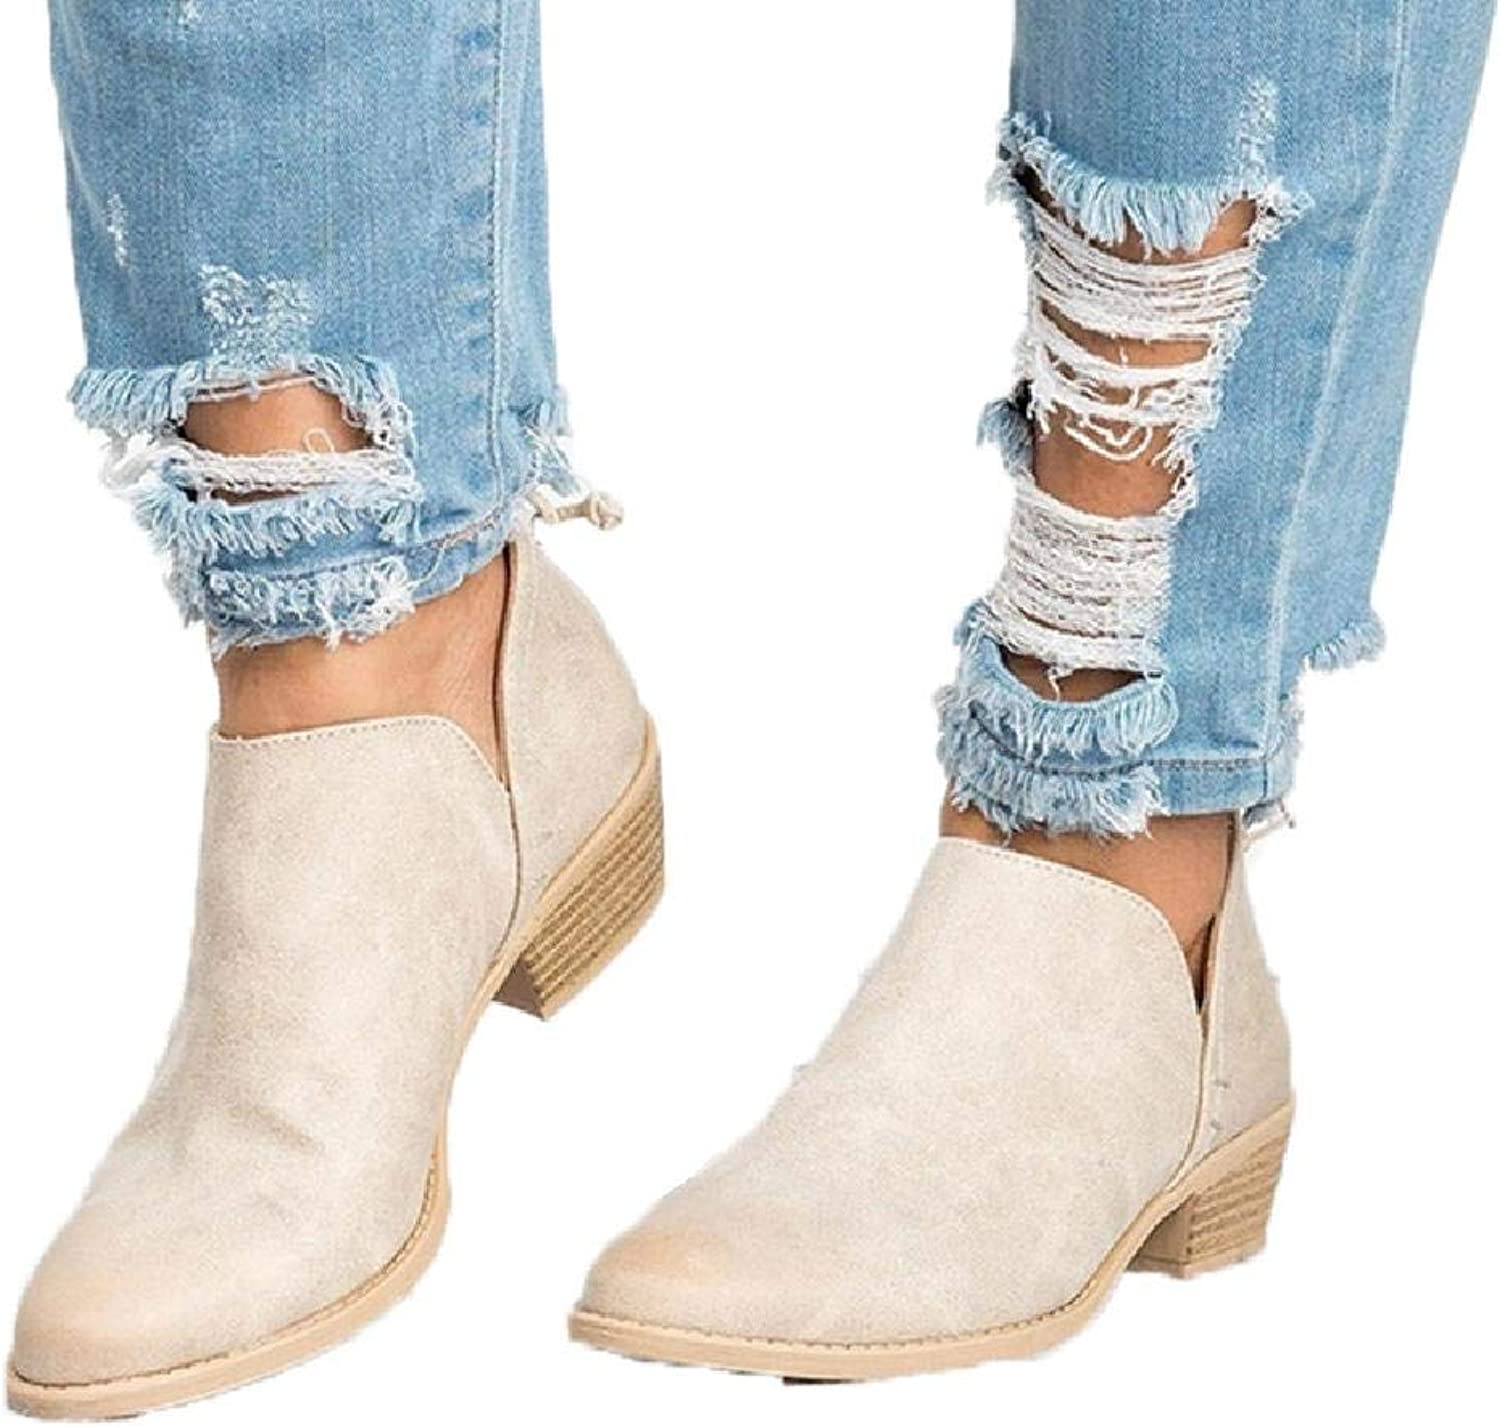 MZjJPN Autumn Women Pumps Low Heels Casual shoes Chunky Heel Solid Ankle Boots Concise shoes Footwear